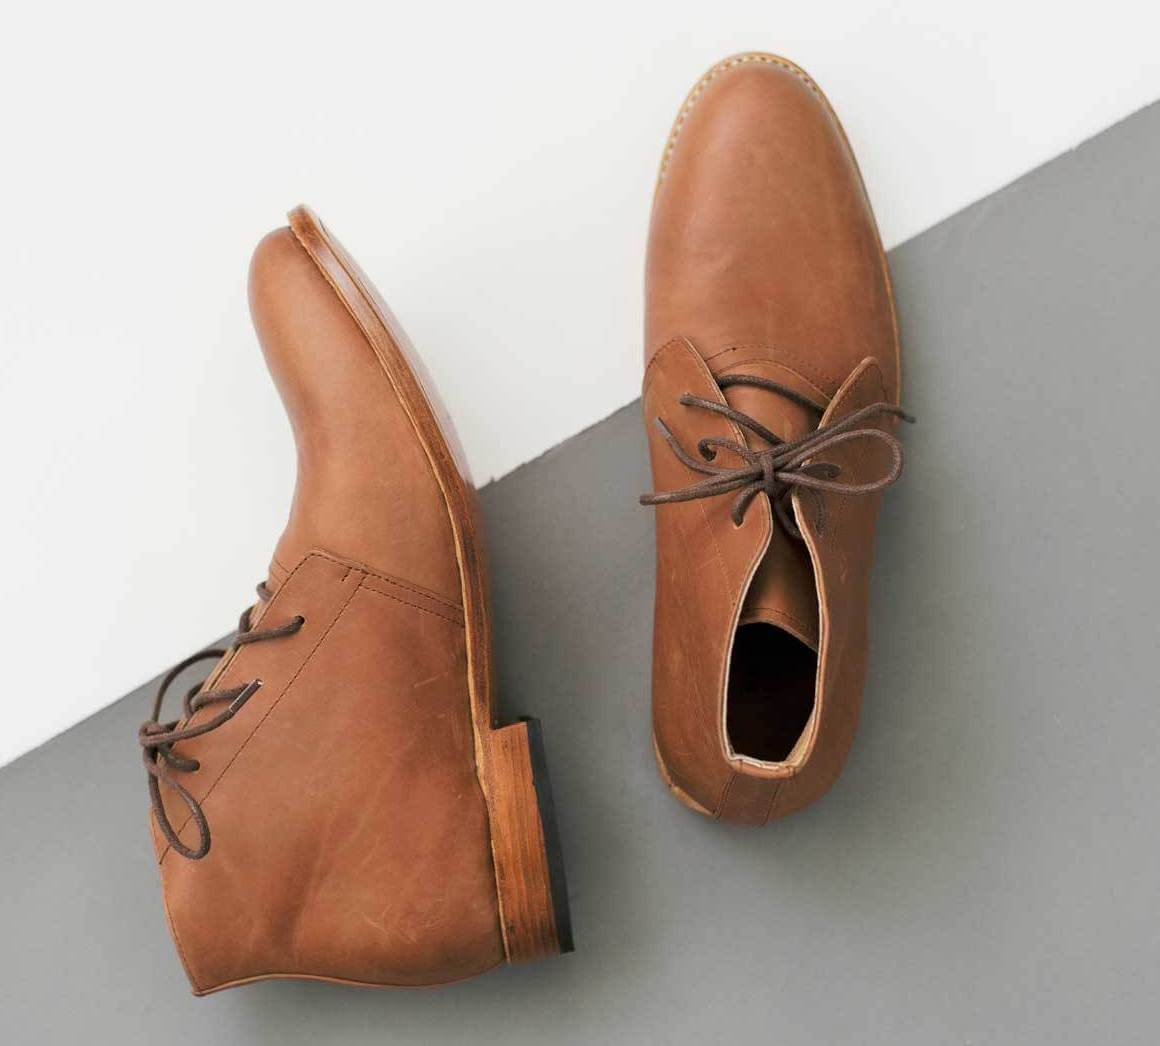 Men's shoes from The Root Collective